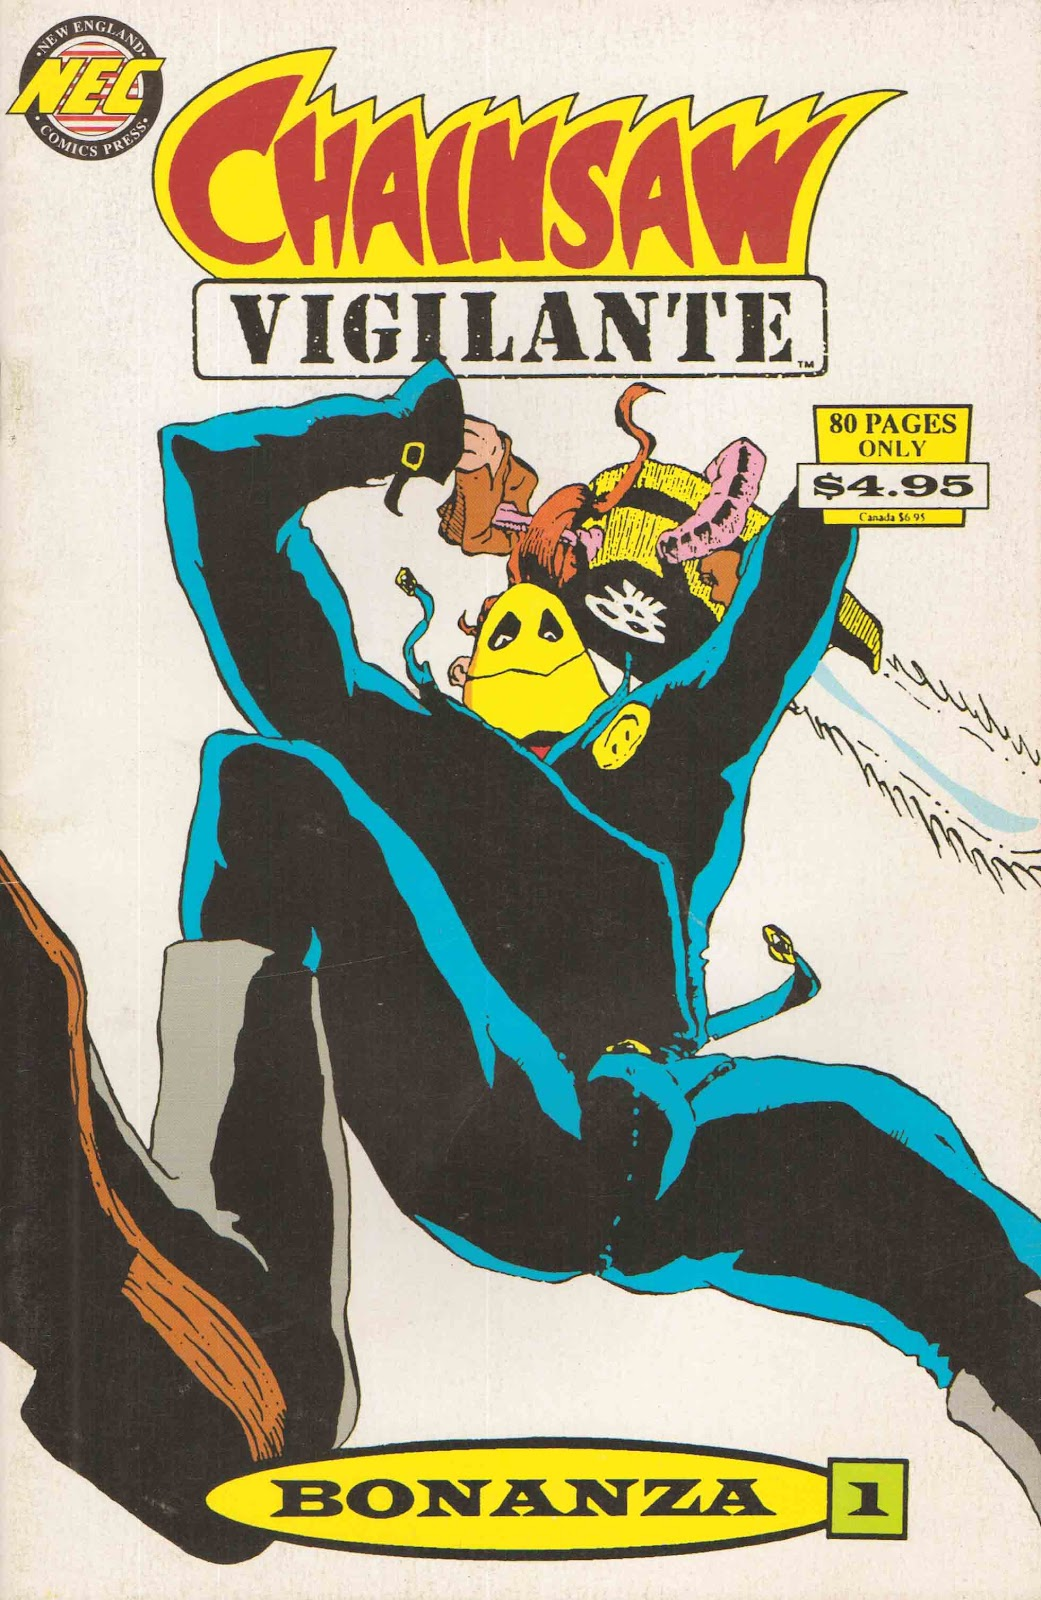 Read online Chainsaw Vigilante comic -  Issue # TPB - 1